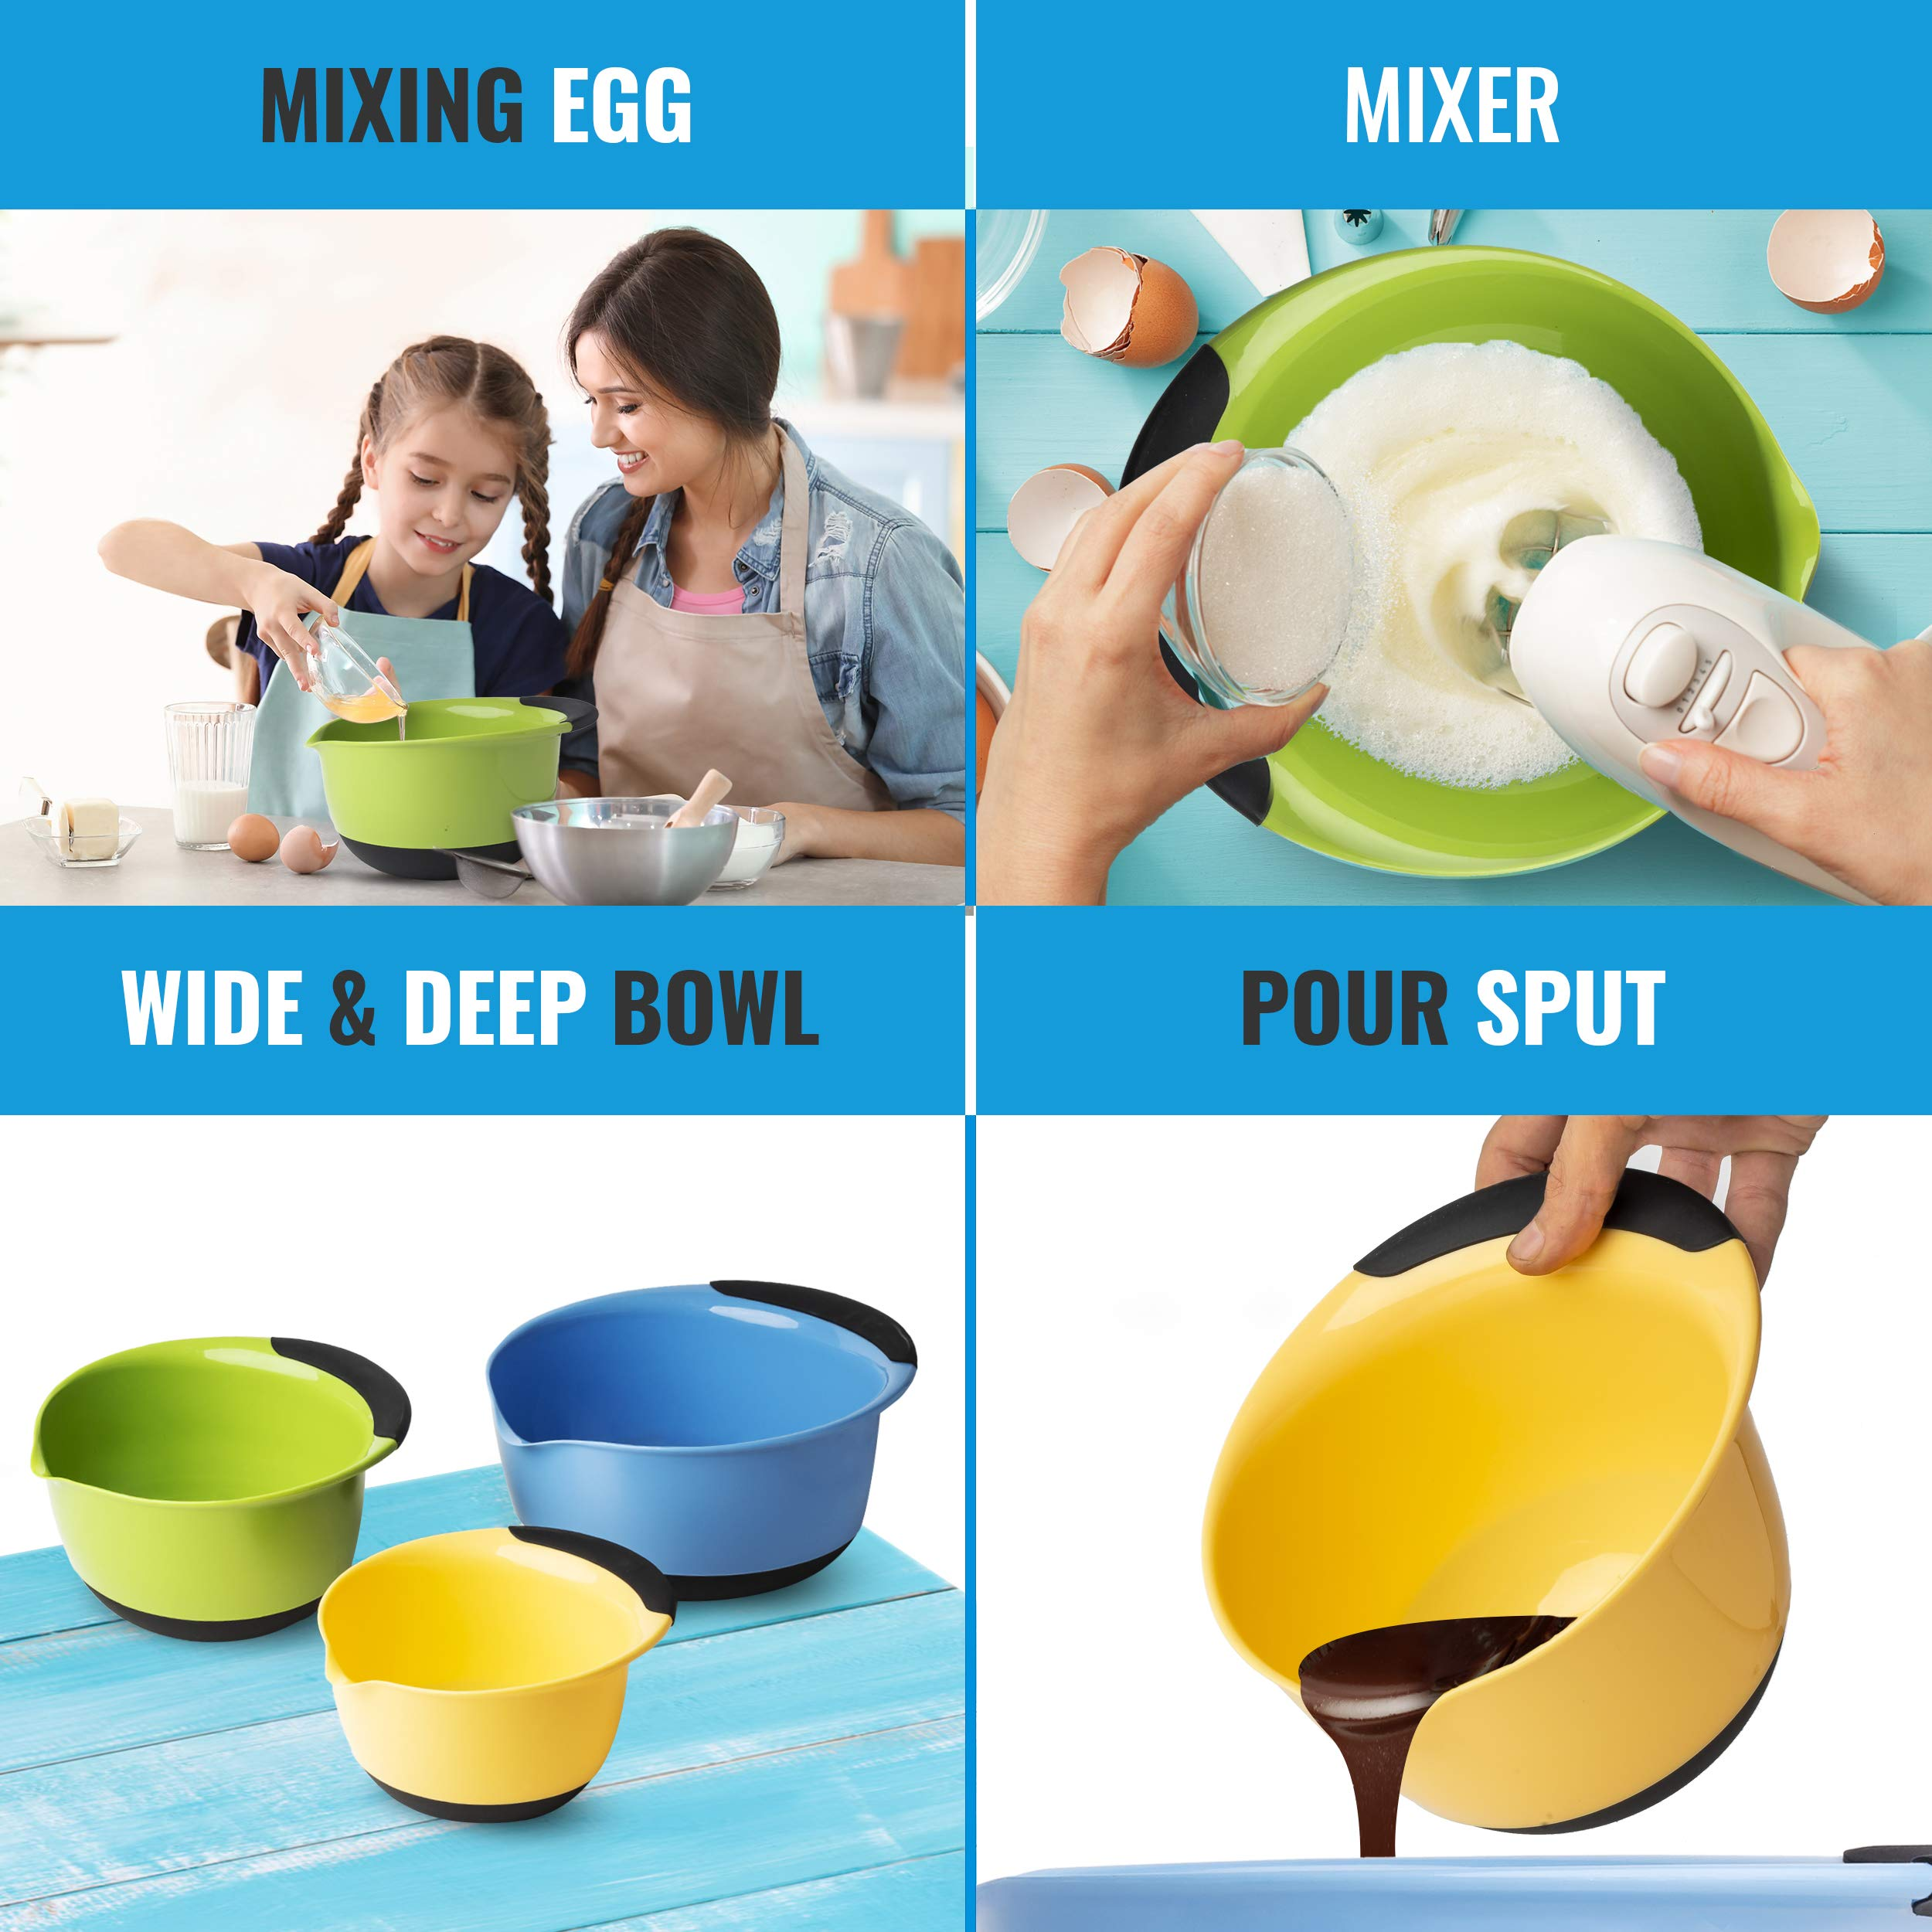 Premium Plastic Mixing Bowls (Set of 3) Sizes: 1.5, 3 & 5 QT - With Non Slip Bottom & Pouring Spout. For Healthy Cooking & Baking, Nesting and Stackable Free Bonus - measuring cup by MONKA (Image #2)